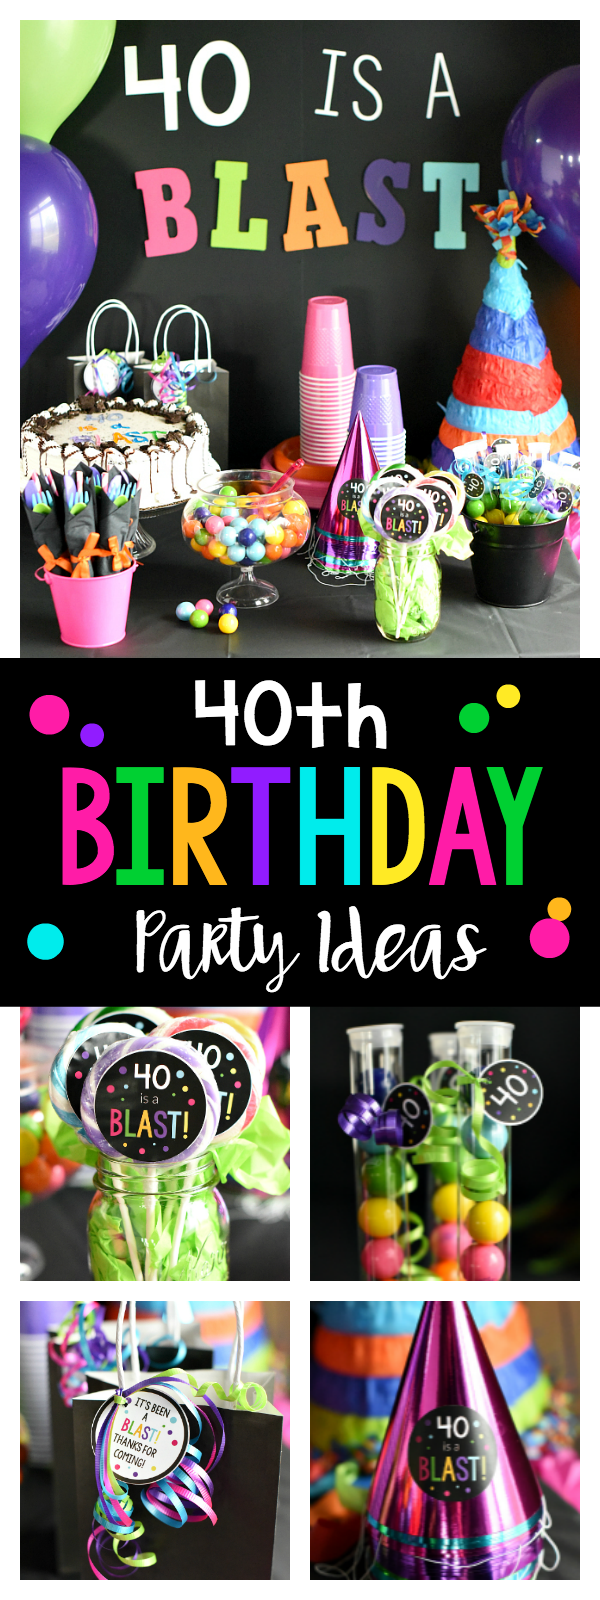 Ideas for a Throwing a Fun 40th Birthday Party-Decorations, Favors, Games, Food and more